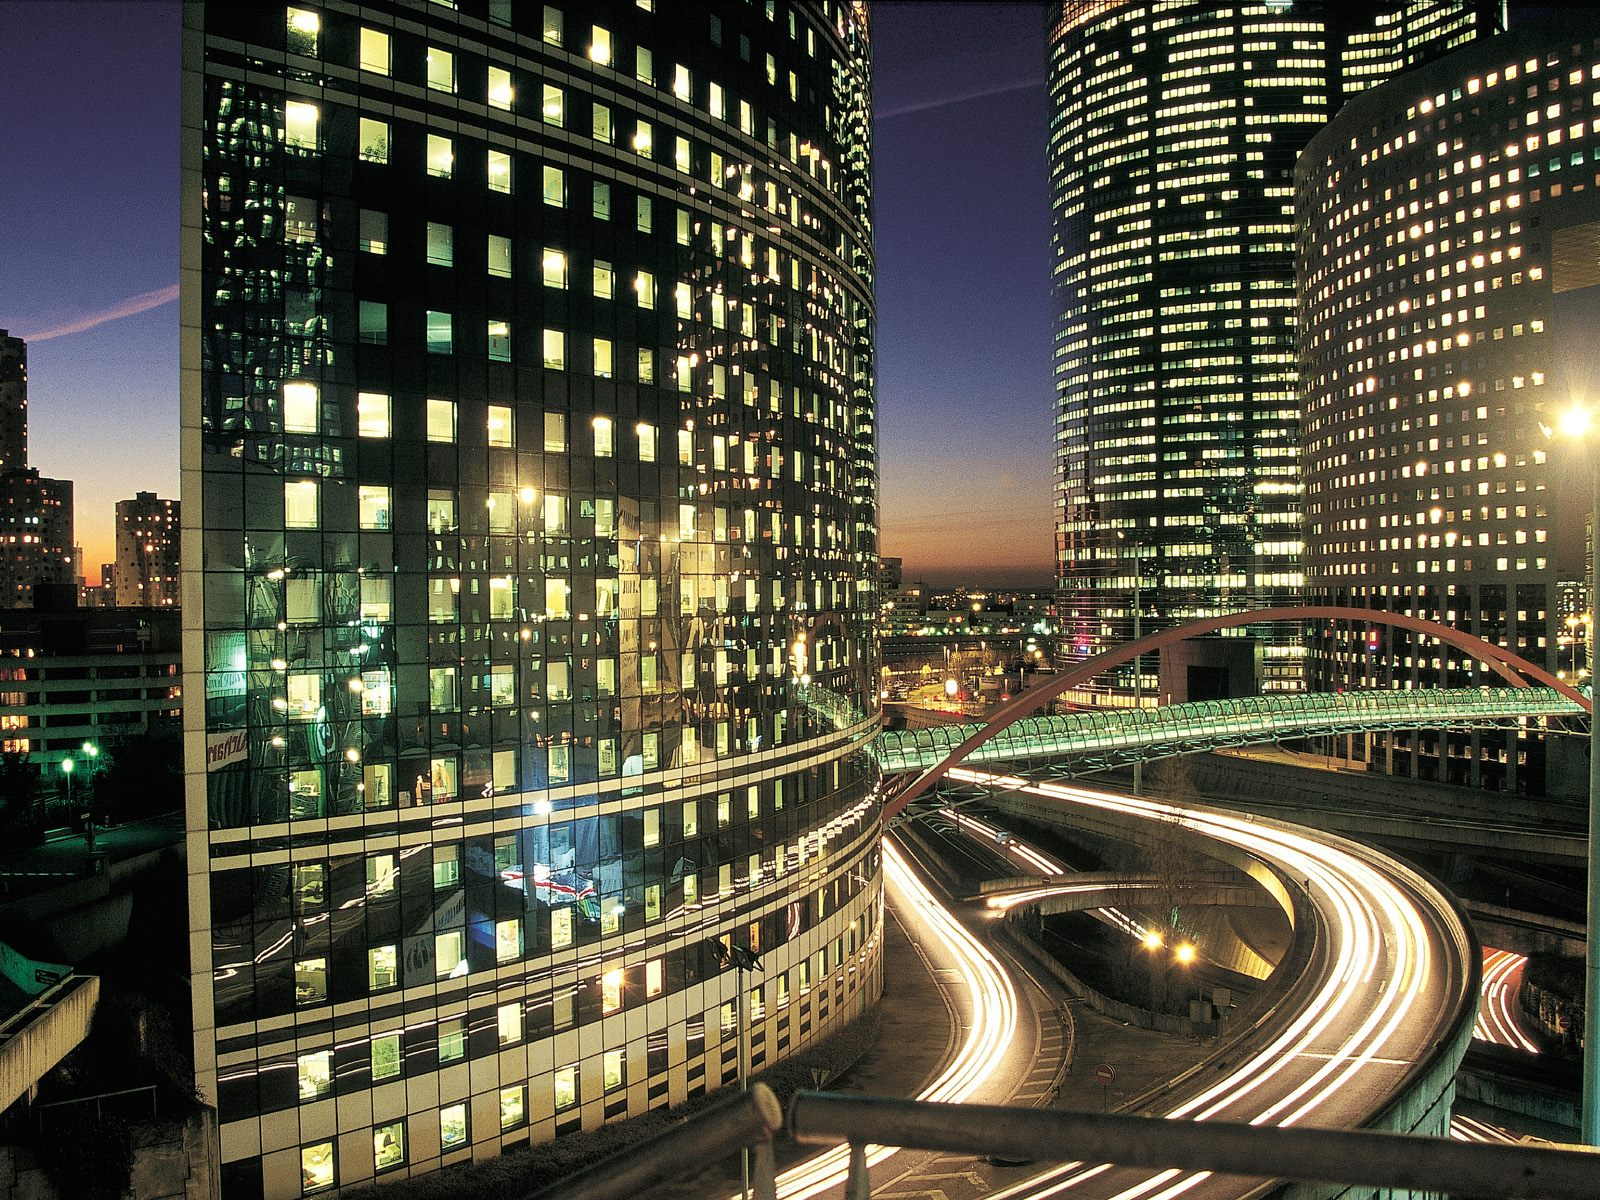 La Defense Business District Paris 634.28 Kb